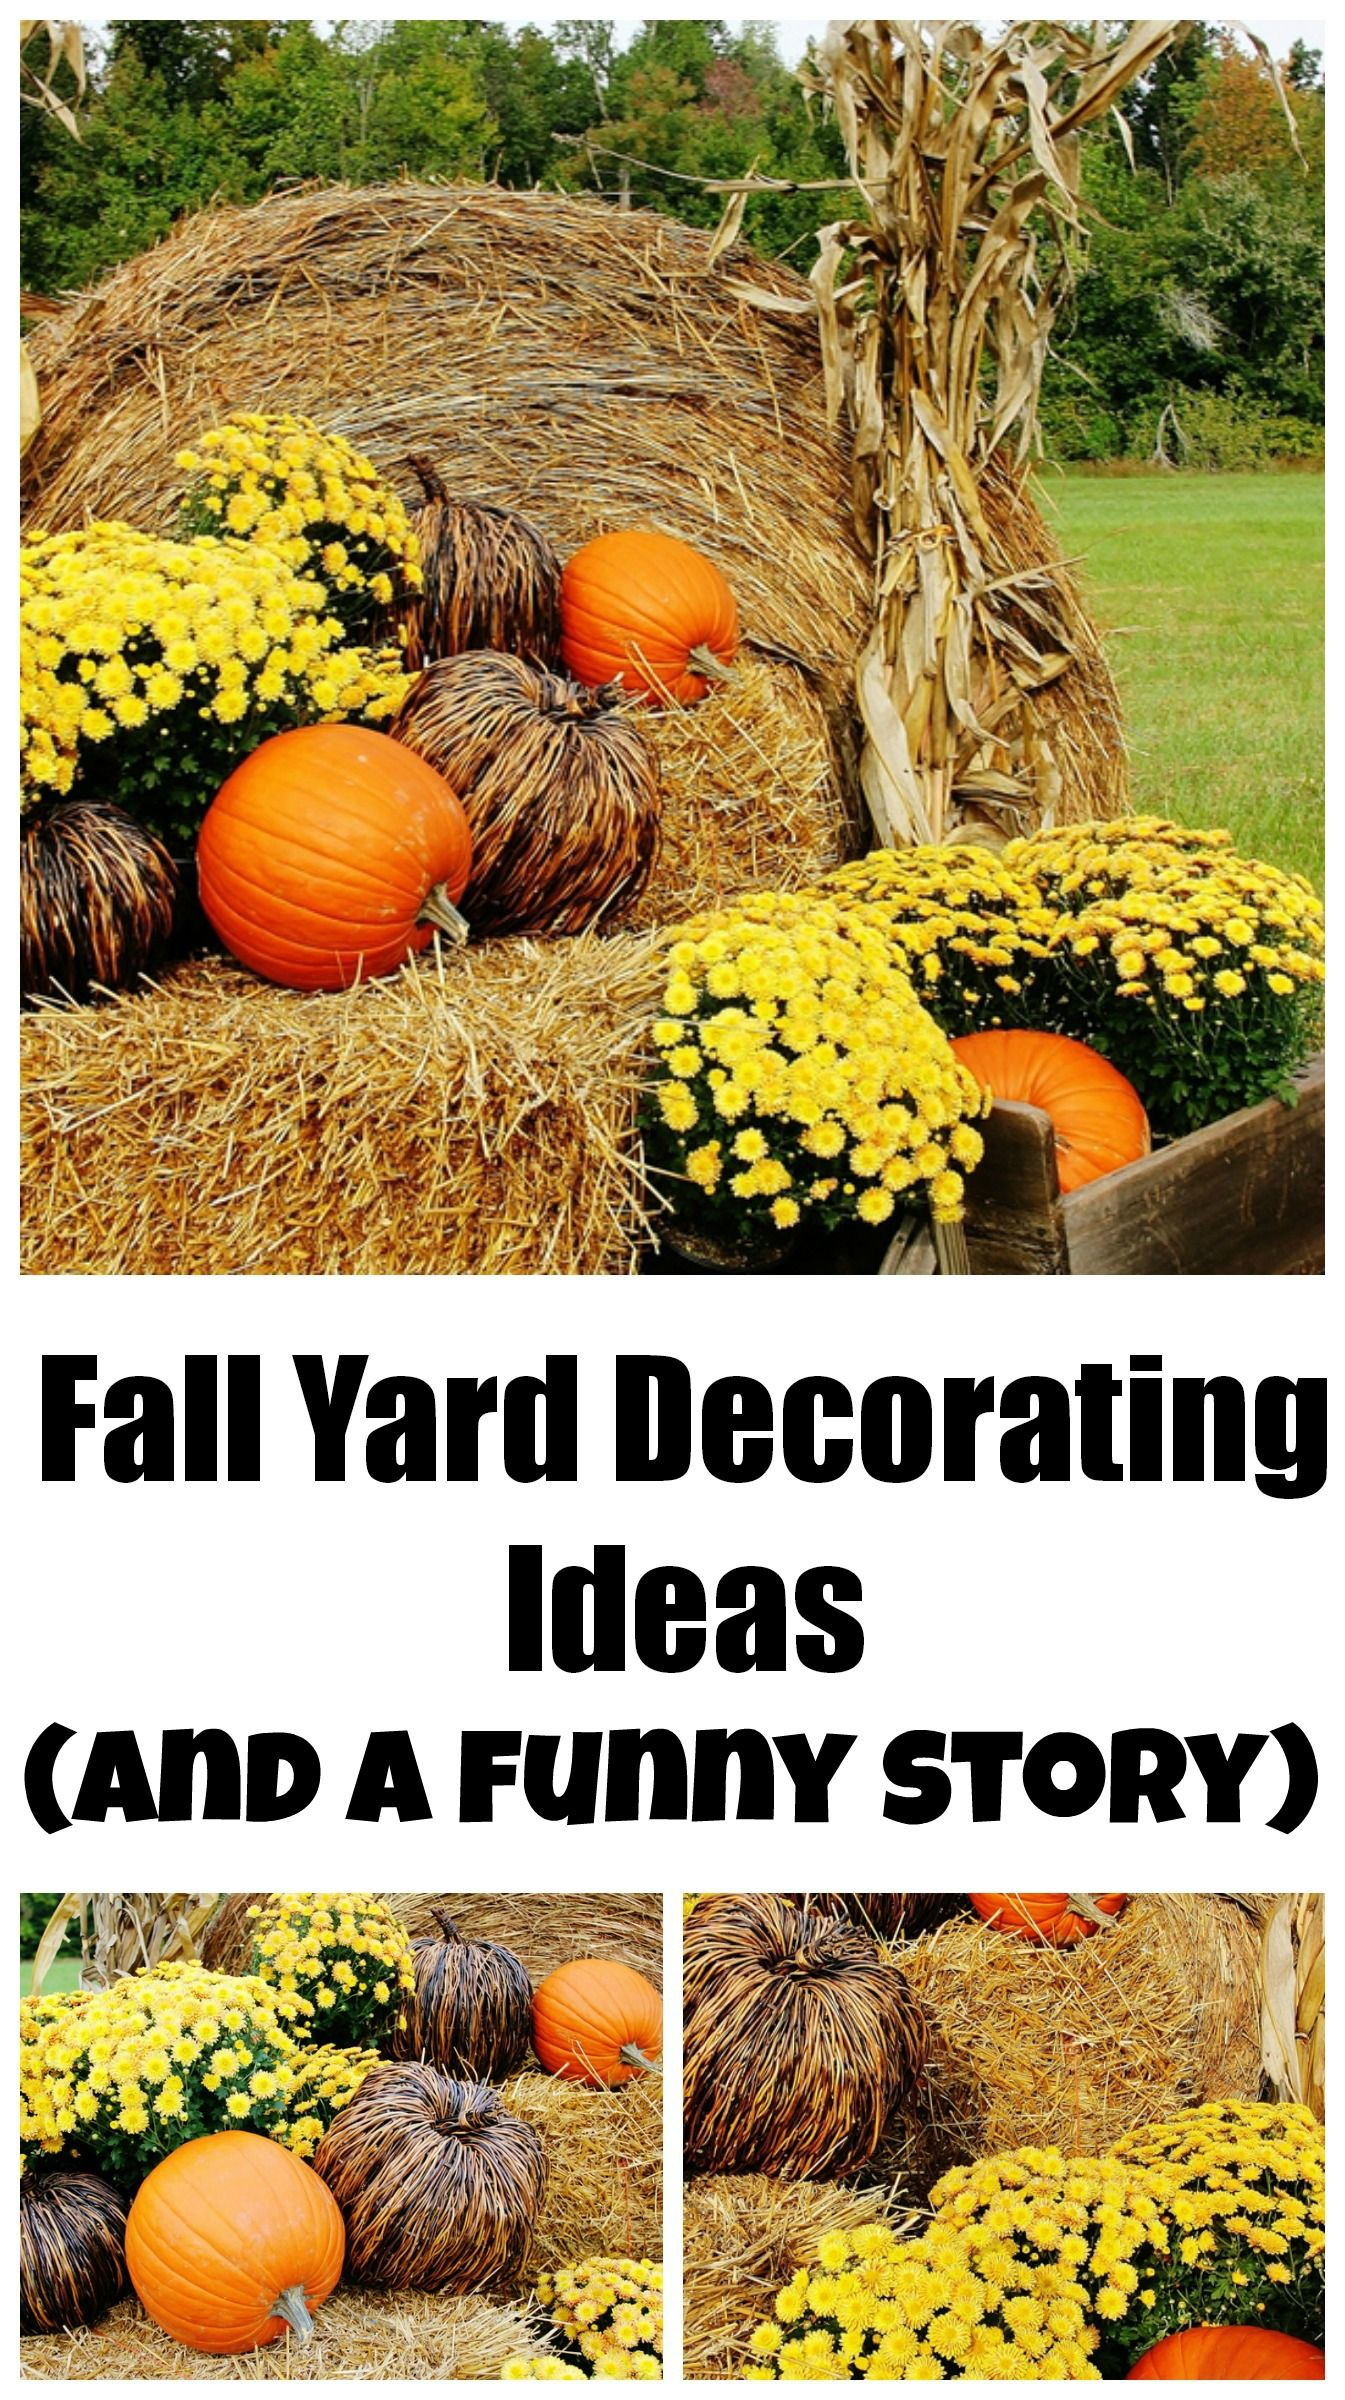 Fall decorating on a budget - Fall Decorating Ideas For Outside And A Funny Story